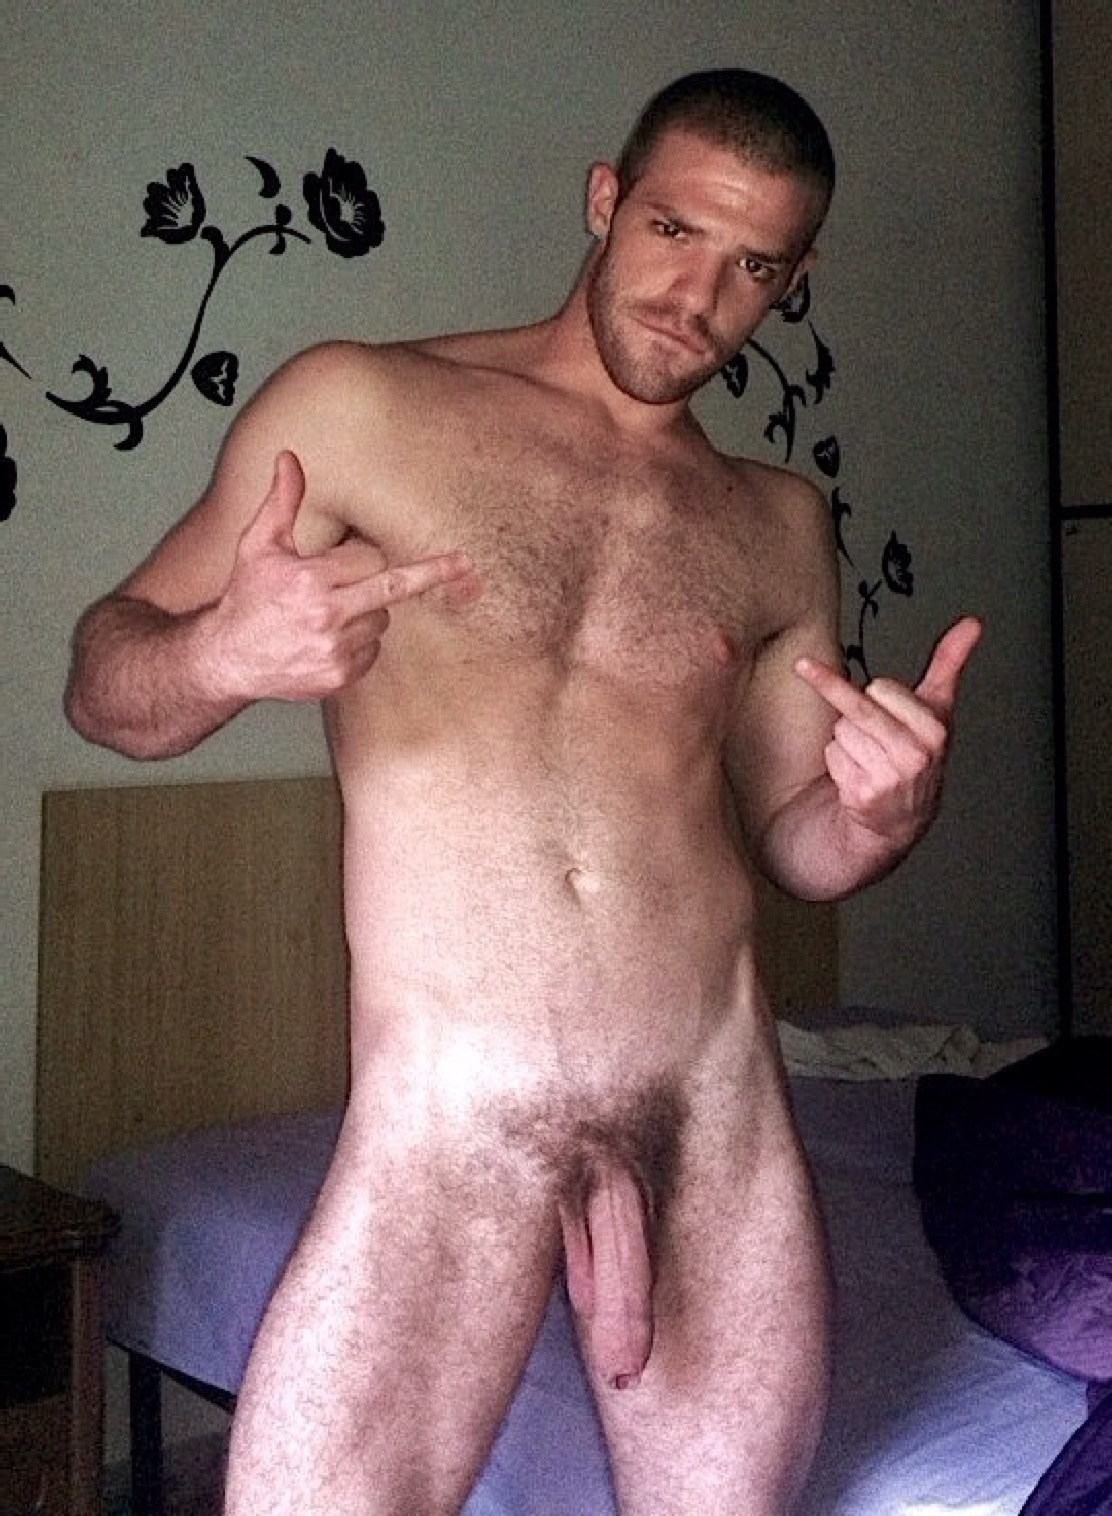 from Thatcher free hot nude men